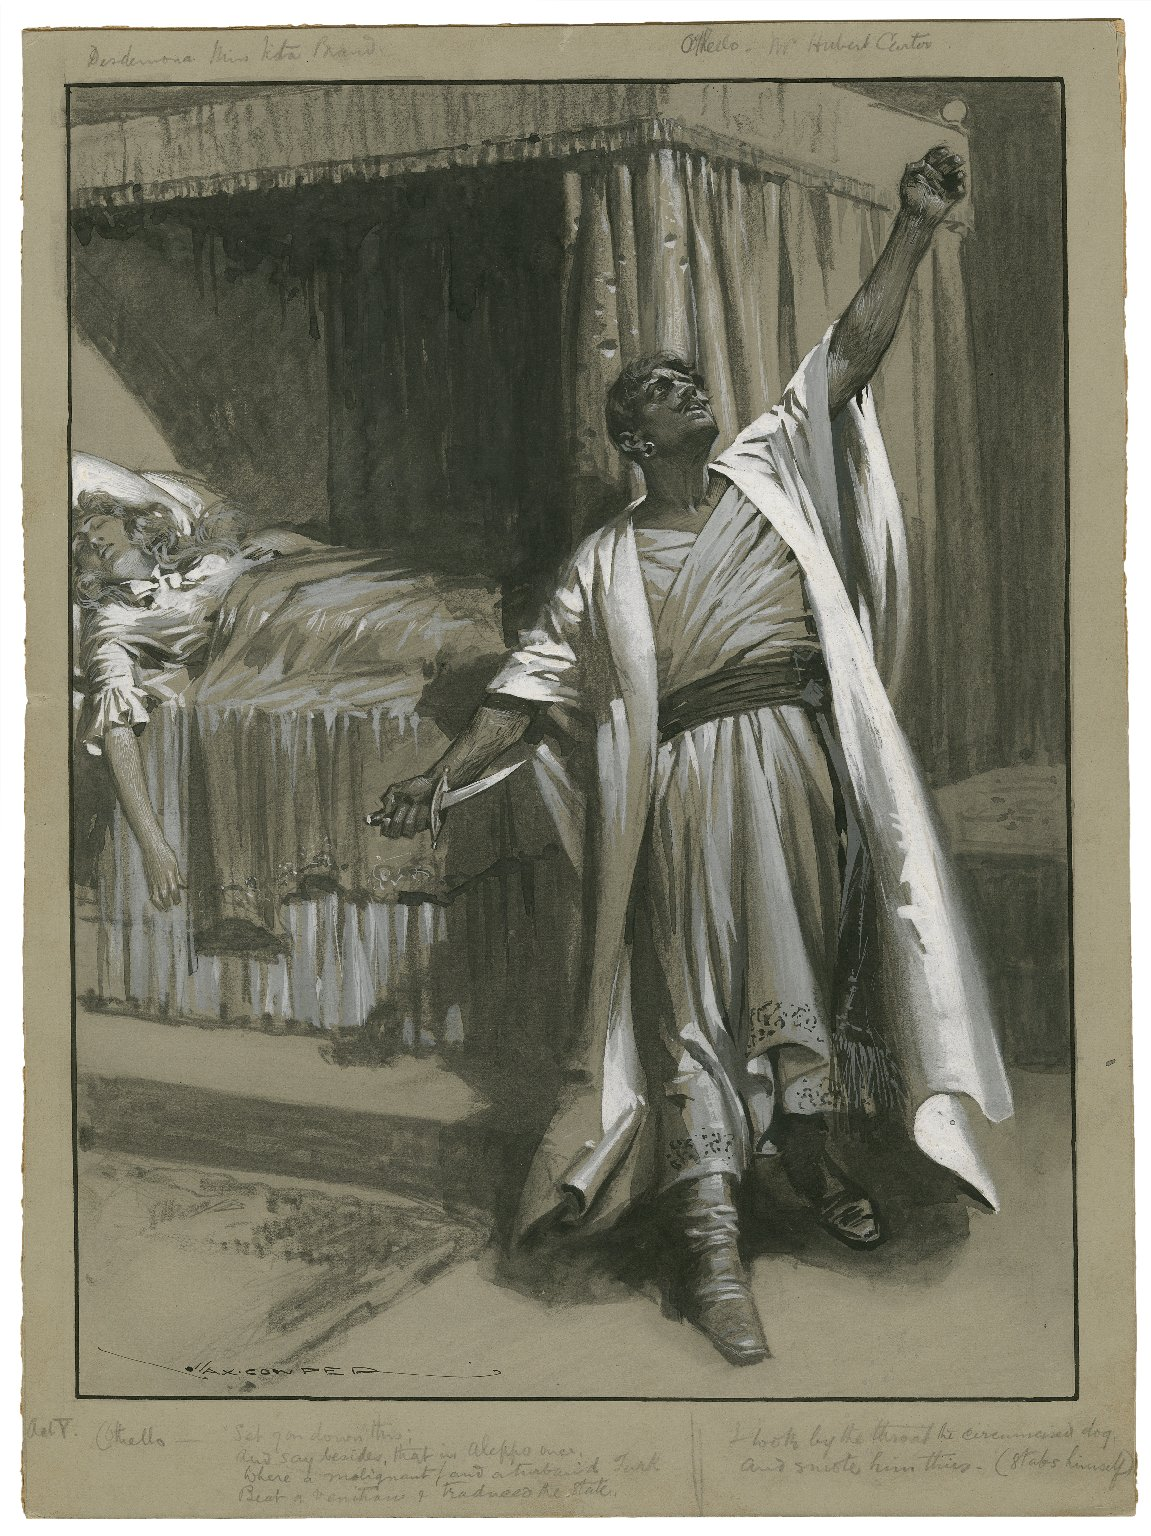 """Othello, V, 2 [at the Shaftesbury] Othello: """"Set you down this ... I took by the throat the circumcised dog and smote him thus"""" Miss Tita Brand as Desdemona, Mr. Hubert Carter as Othello [graphic] / Max Cowper."""